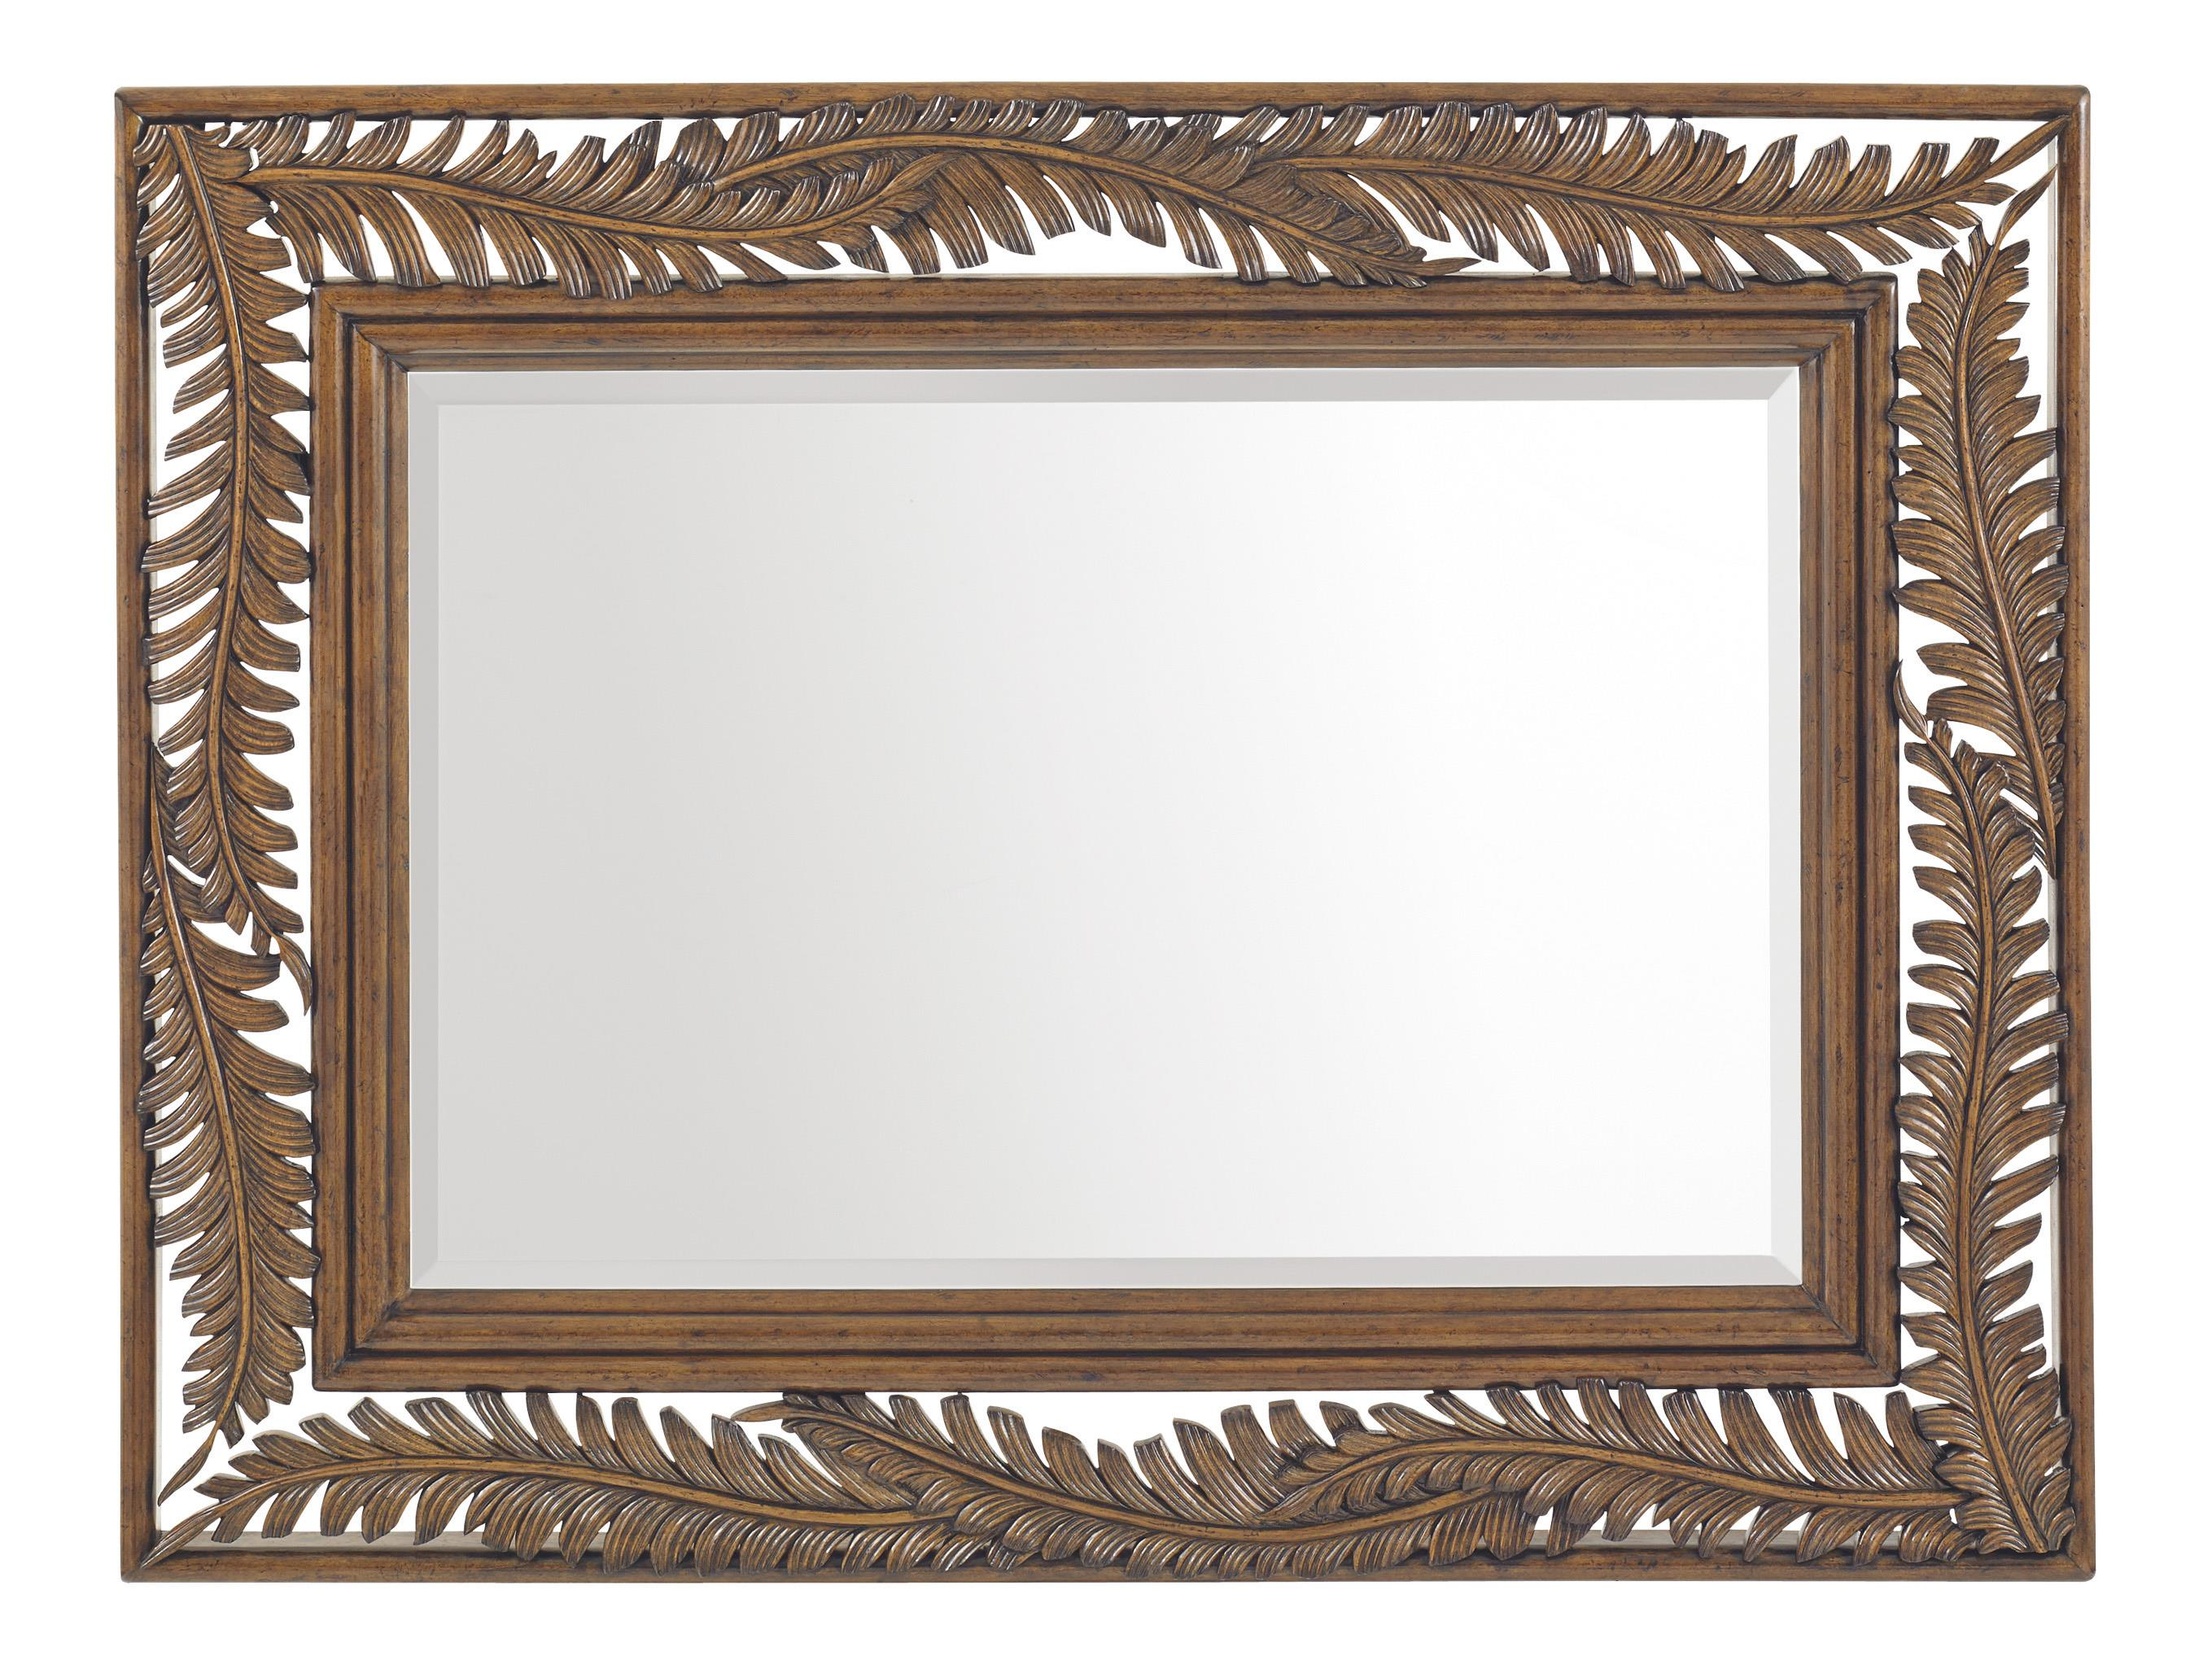 Tommy Bahama Home Bali Hai Seabrook Landscape Mirror - Item Number: 593-206